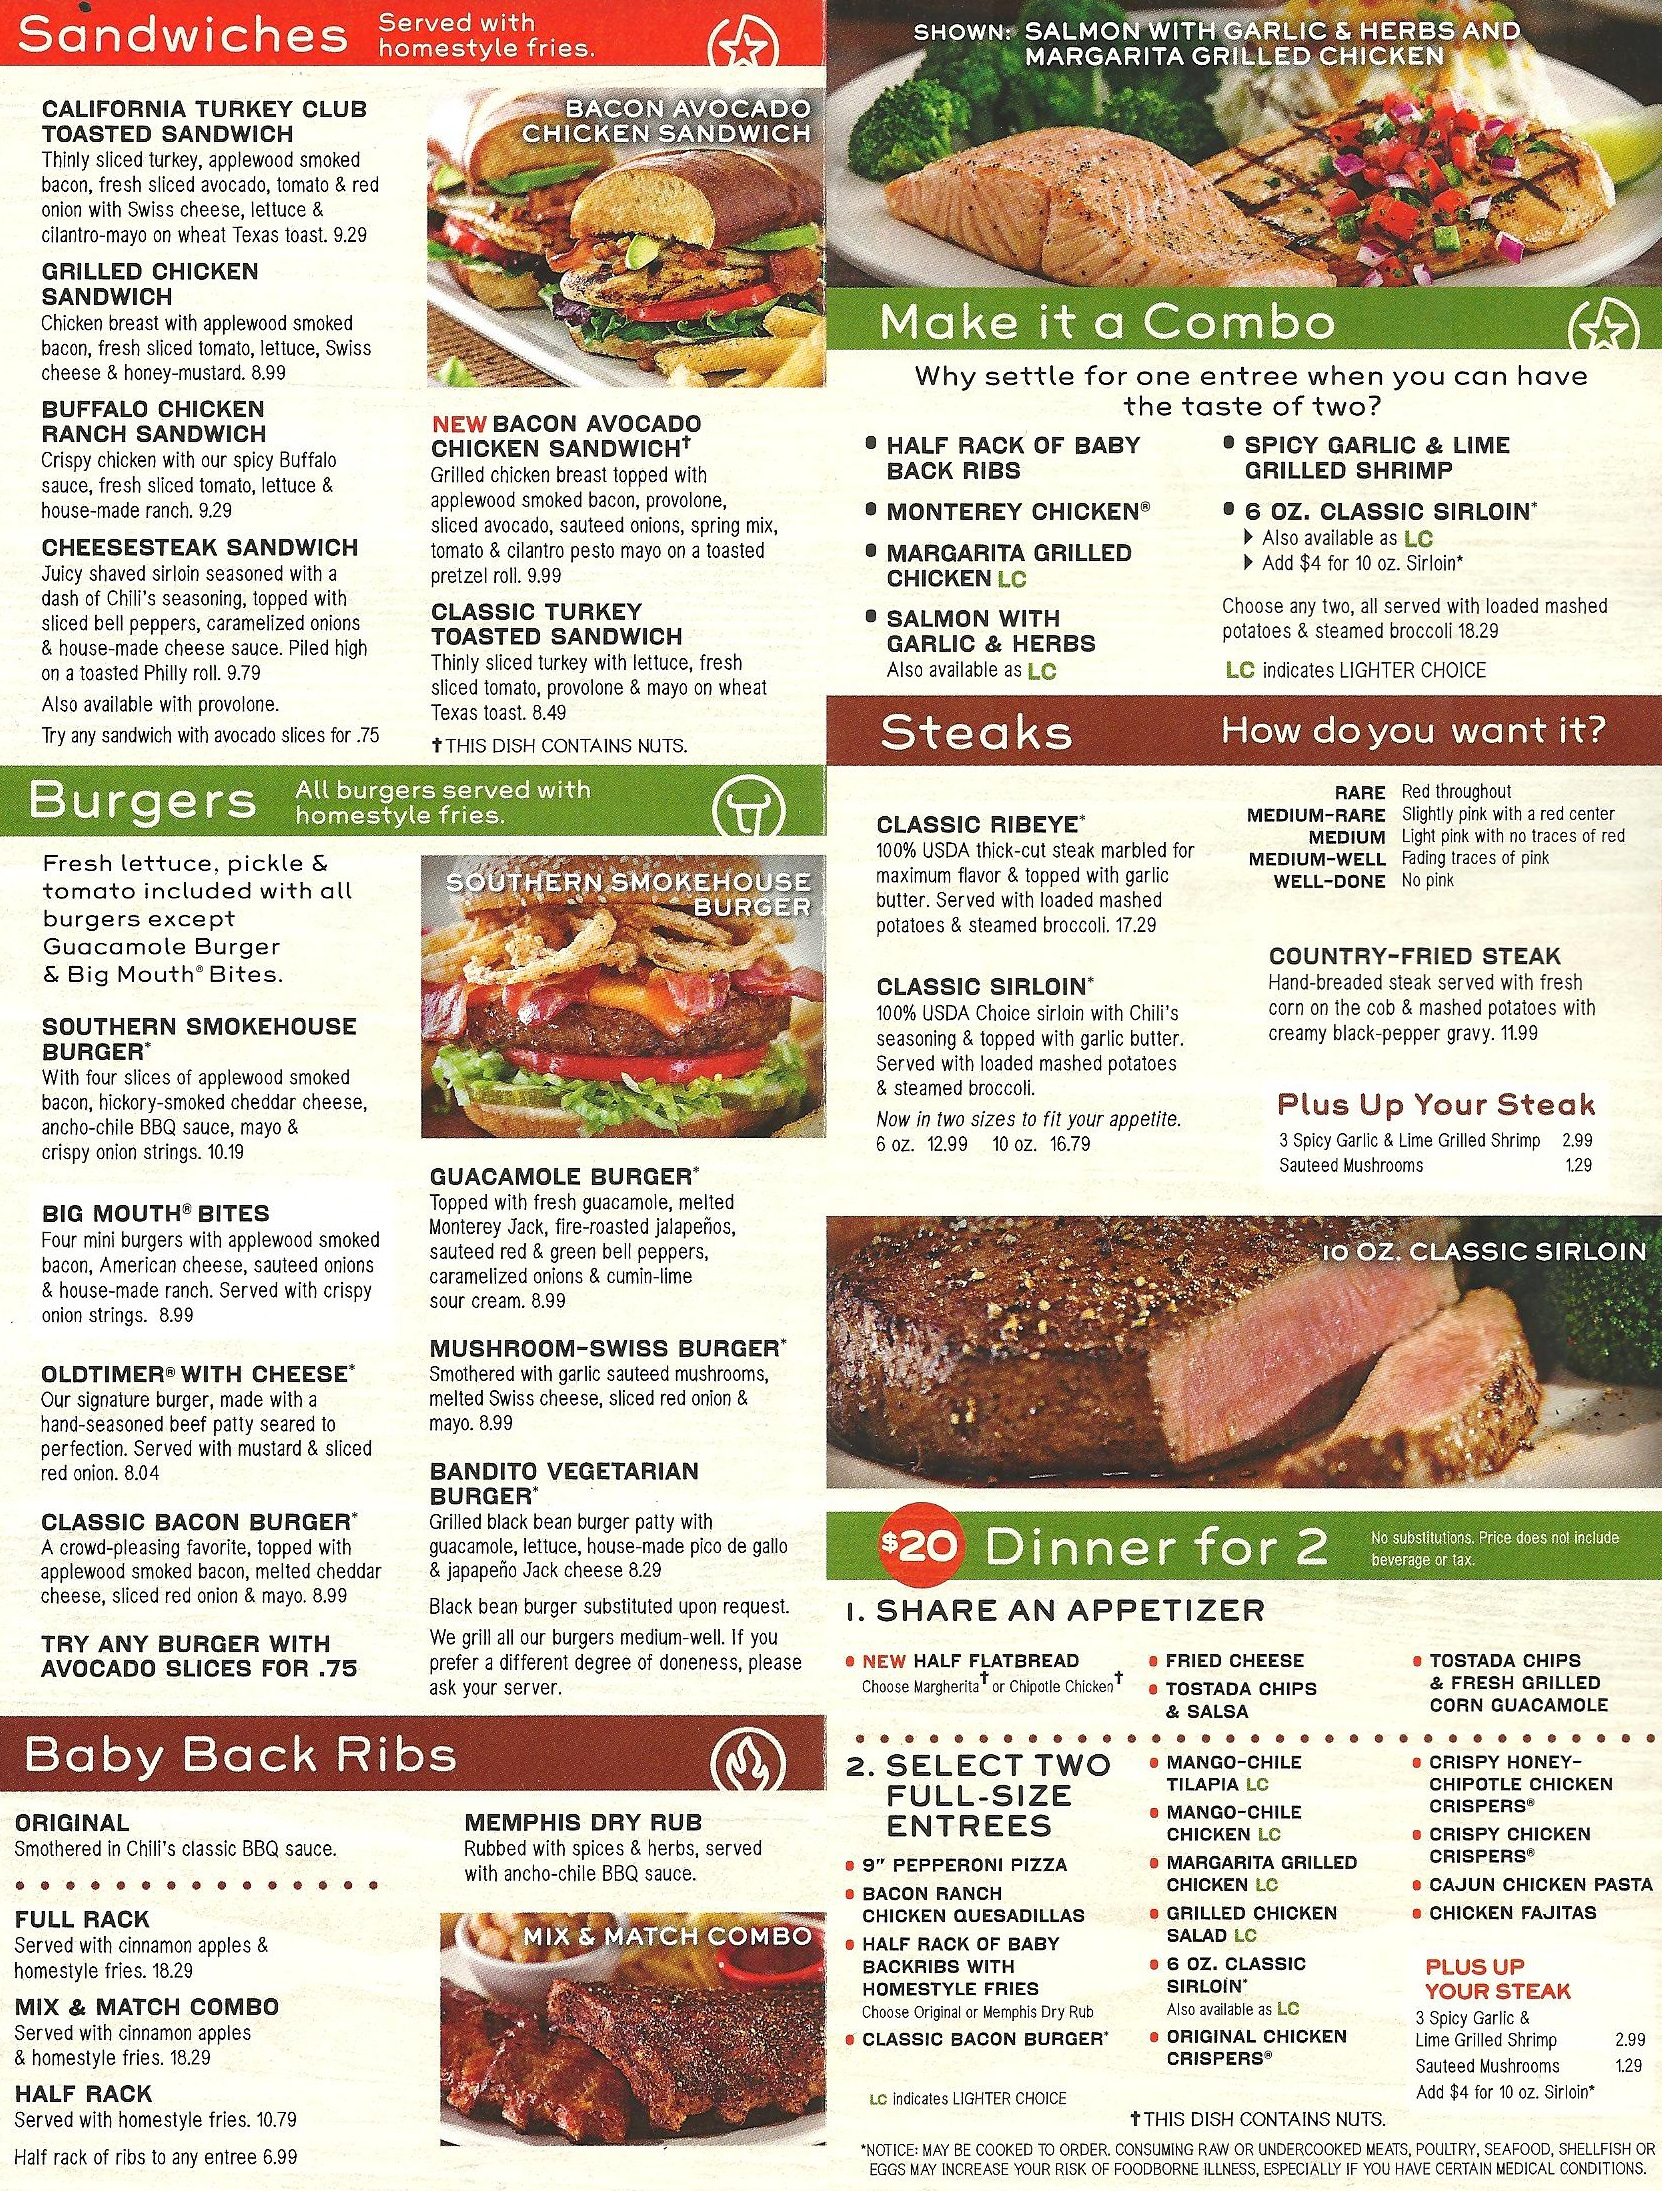 Chili's Chili Restaurant Menu